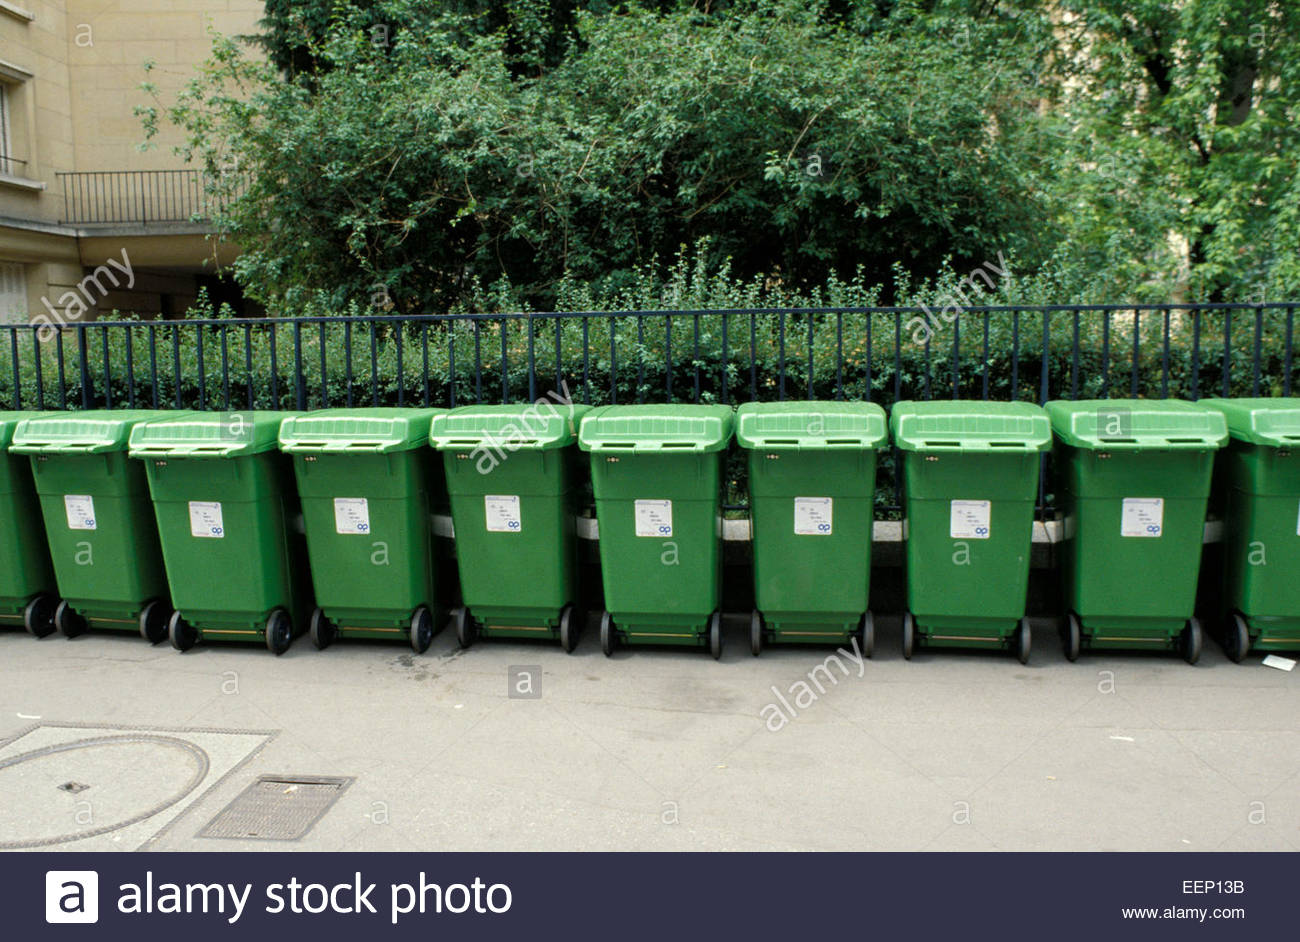 Range of waste containers in Paris, France. - Stock Image